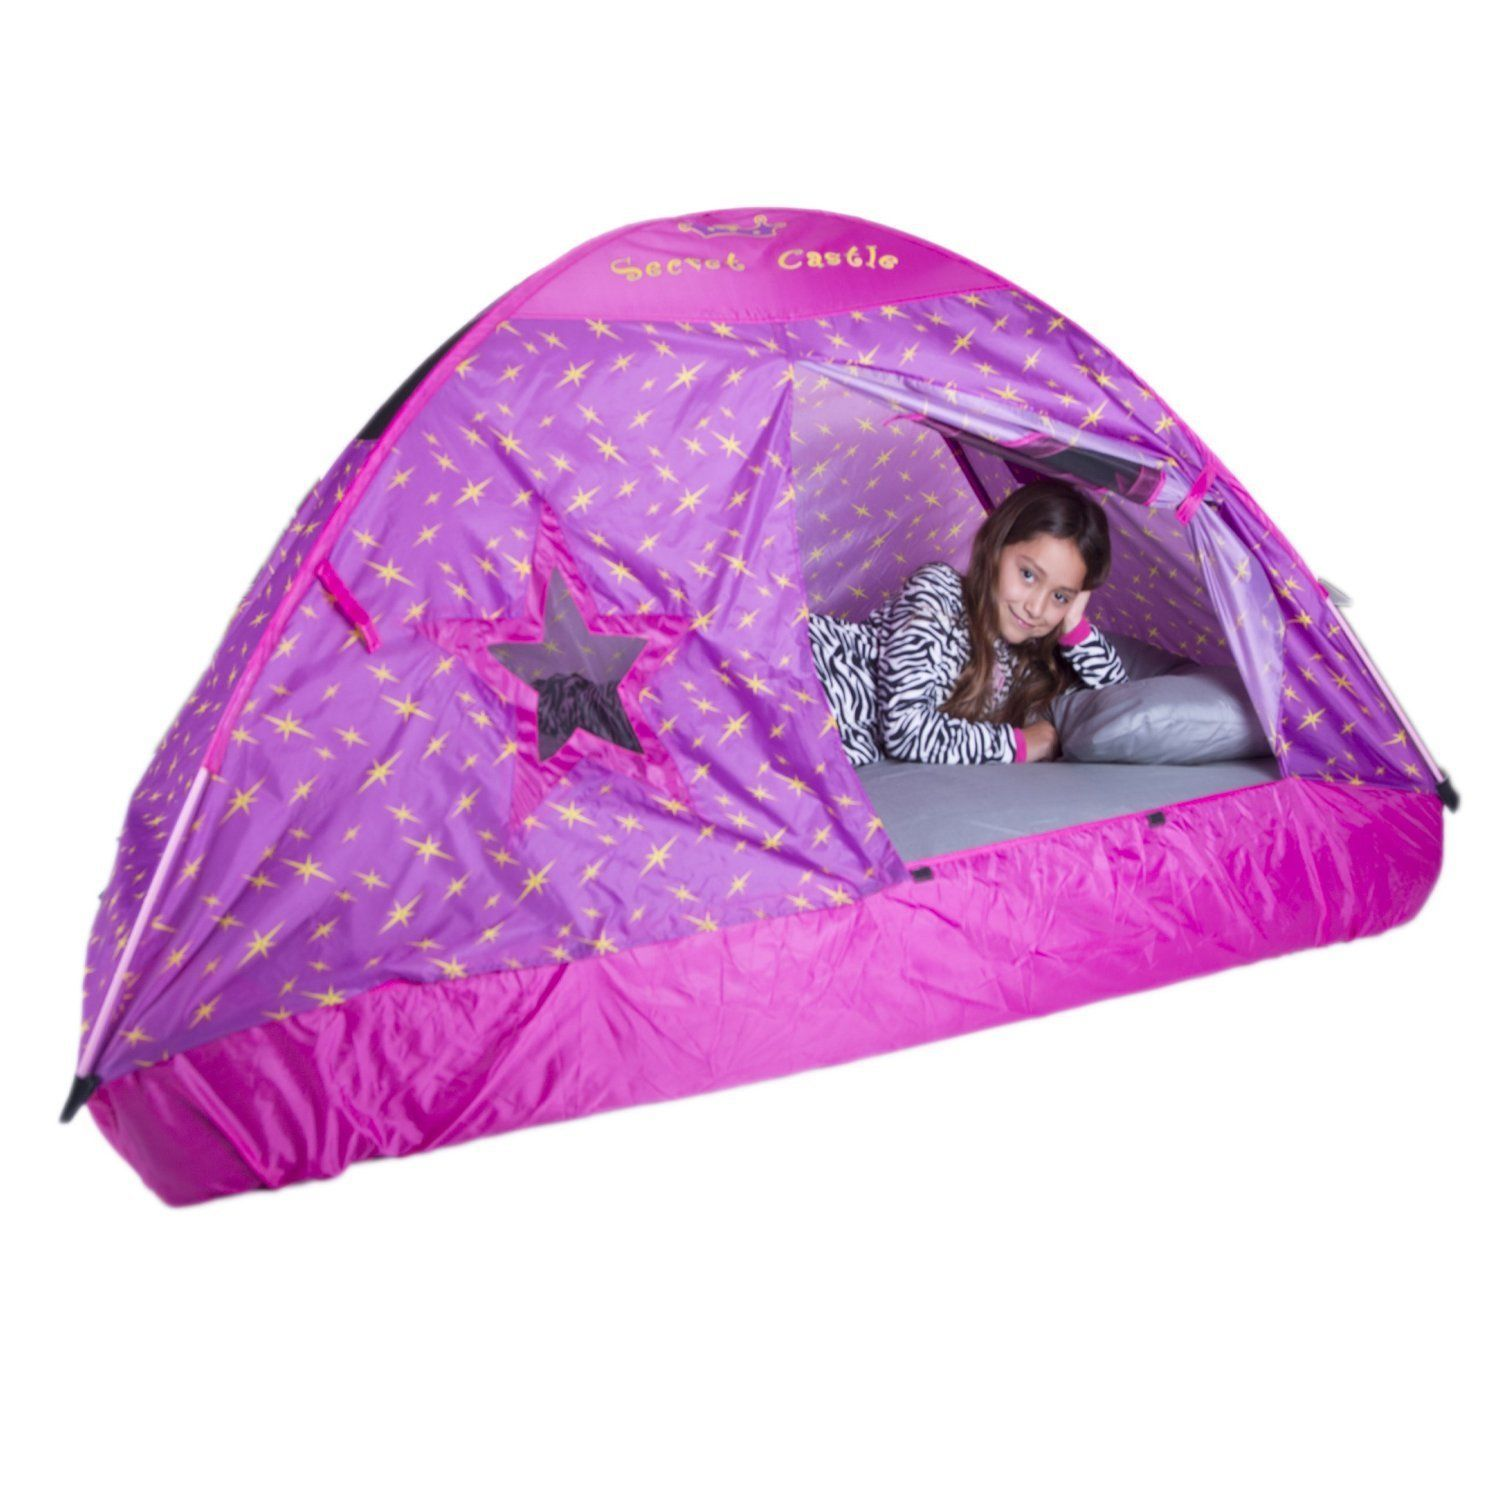 New Pacific Play Tent Secret Castle Twin Bed Tent Girls